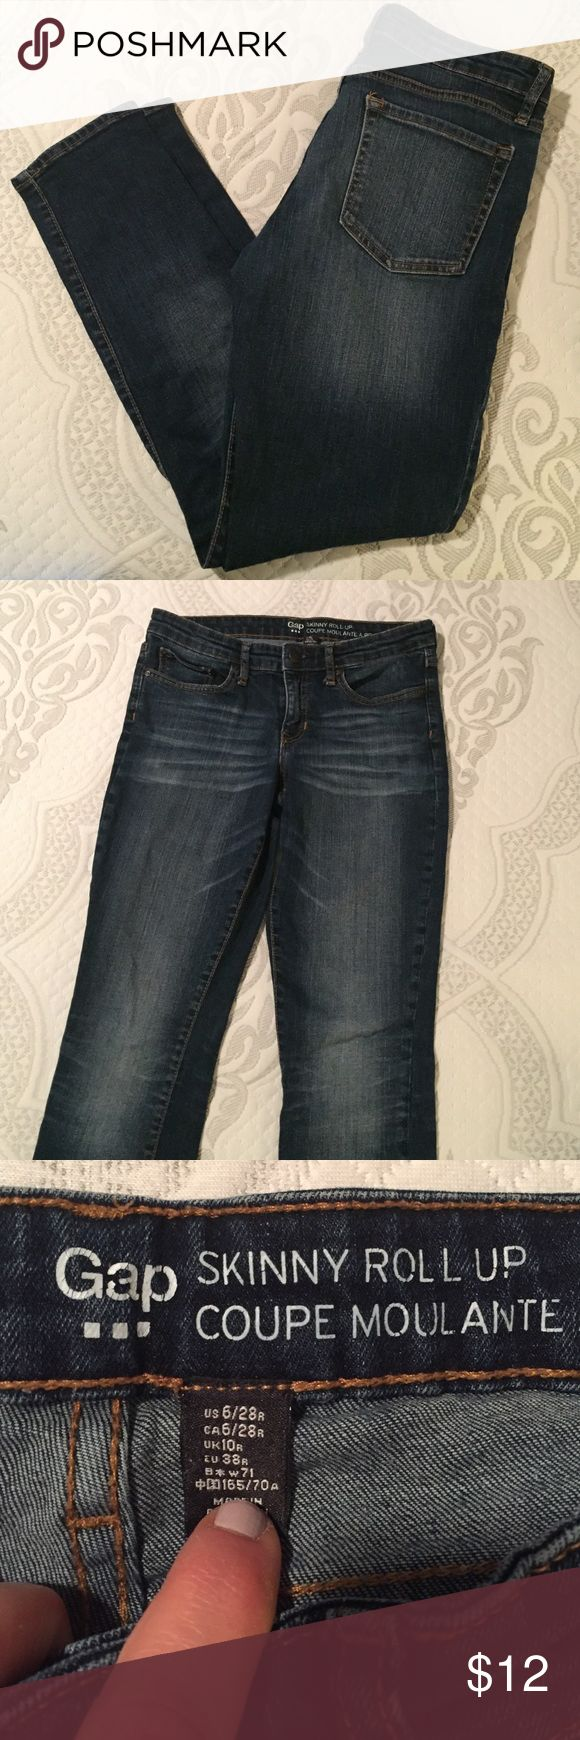 """Gap OUTLET skinny jeans EUC skinny jeans from Gap Outlet. Size 6. Inseam is 28"""". Nice dark blue with some fading. GAP Jeans Skinny"""